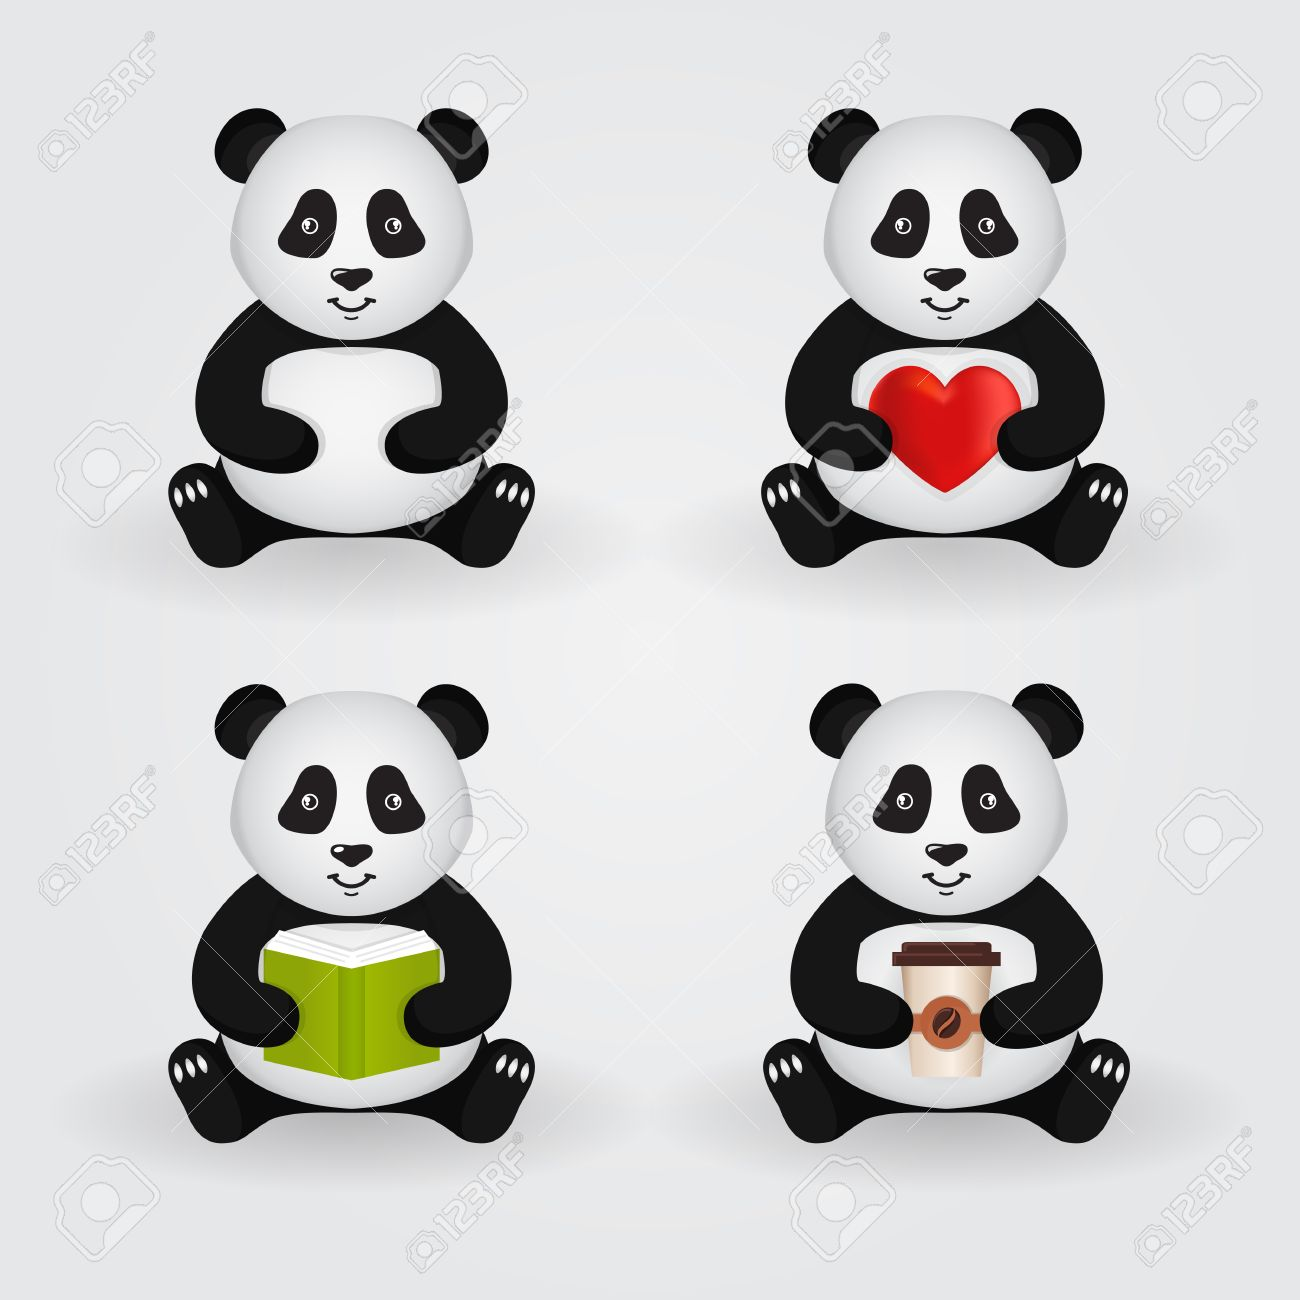 Cute cartoon pandas isolated on light background. Set of pandas holding a different things: heart, book, cup of coffee. Vector illustration. - 51229345